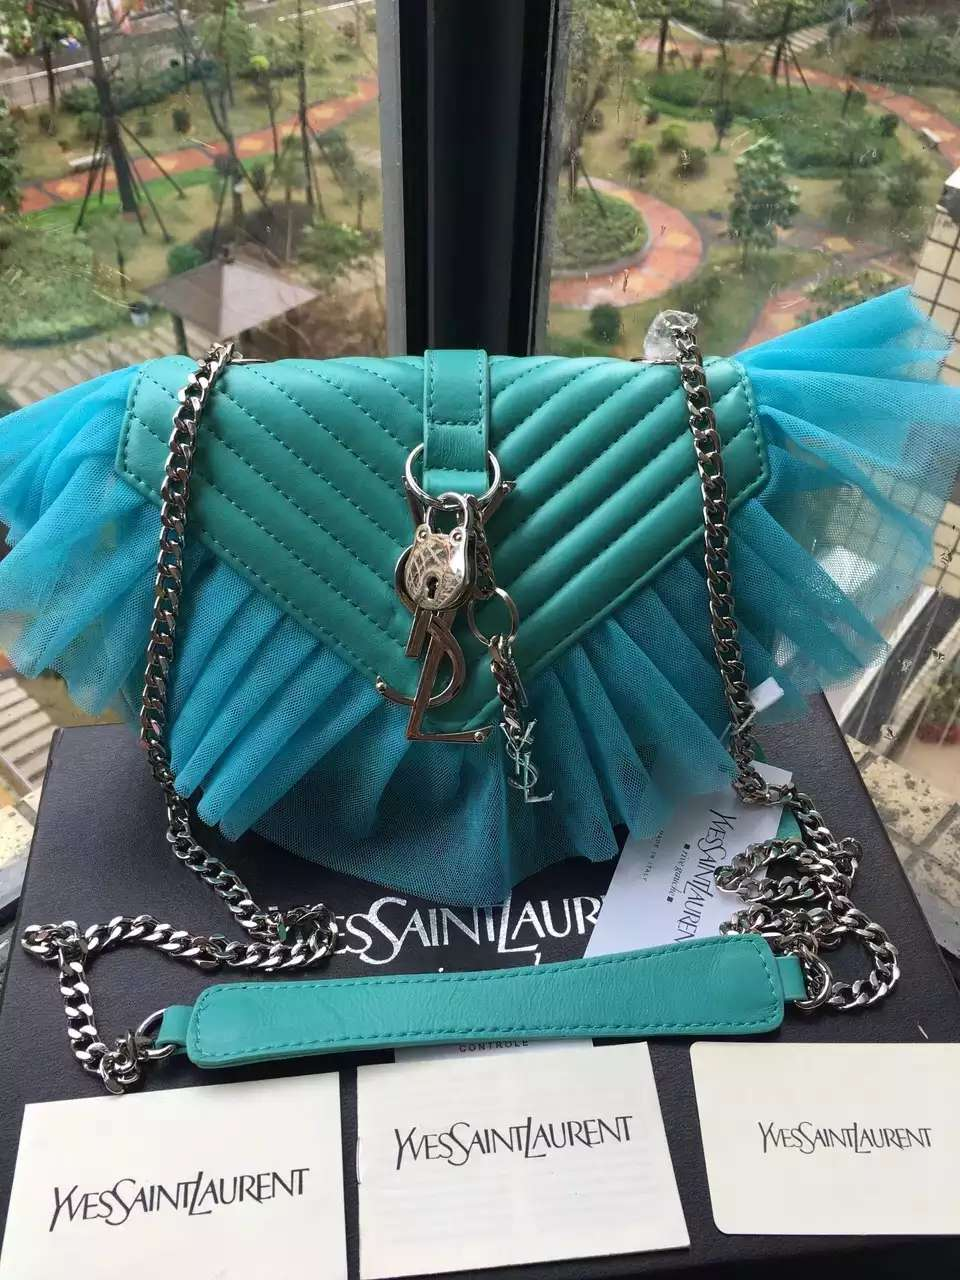 Limited Edition!2016 Saint Laurent Bags Cheap Sale-Saint Laurent Classic Large Baby Monogram Punk Chain Bag in Turquoise Matelasse Leather and Tulle